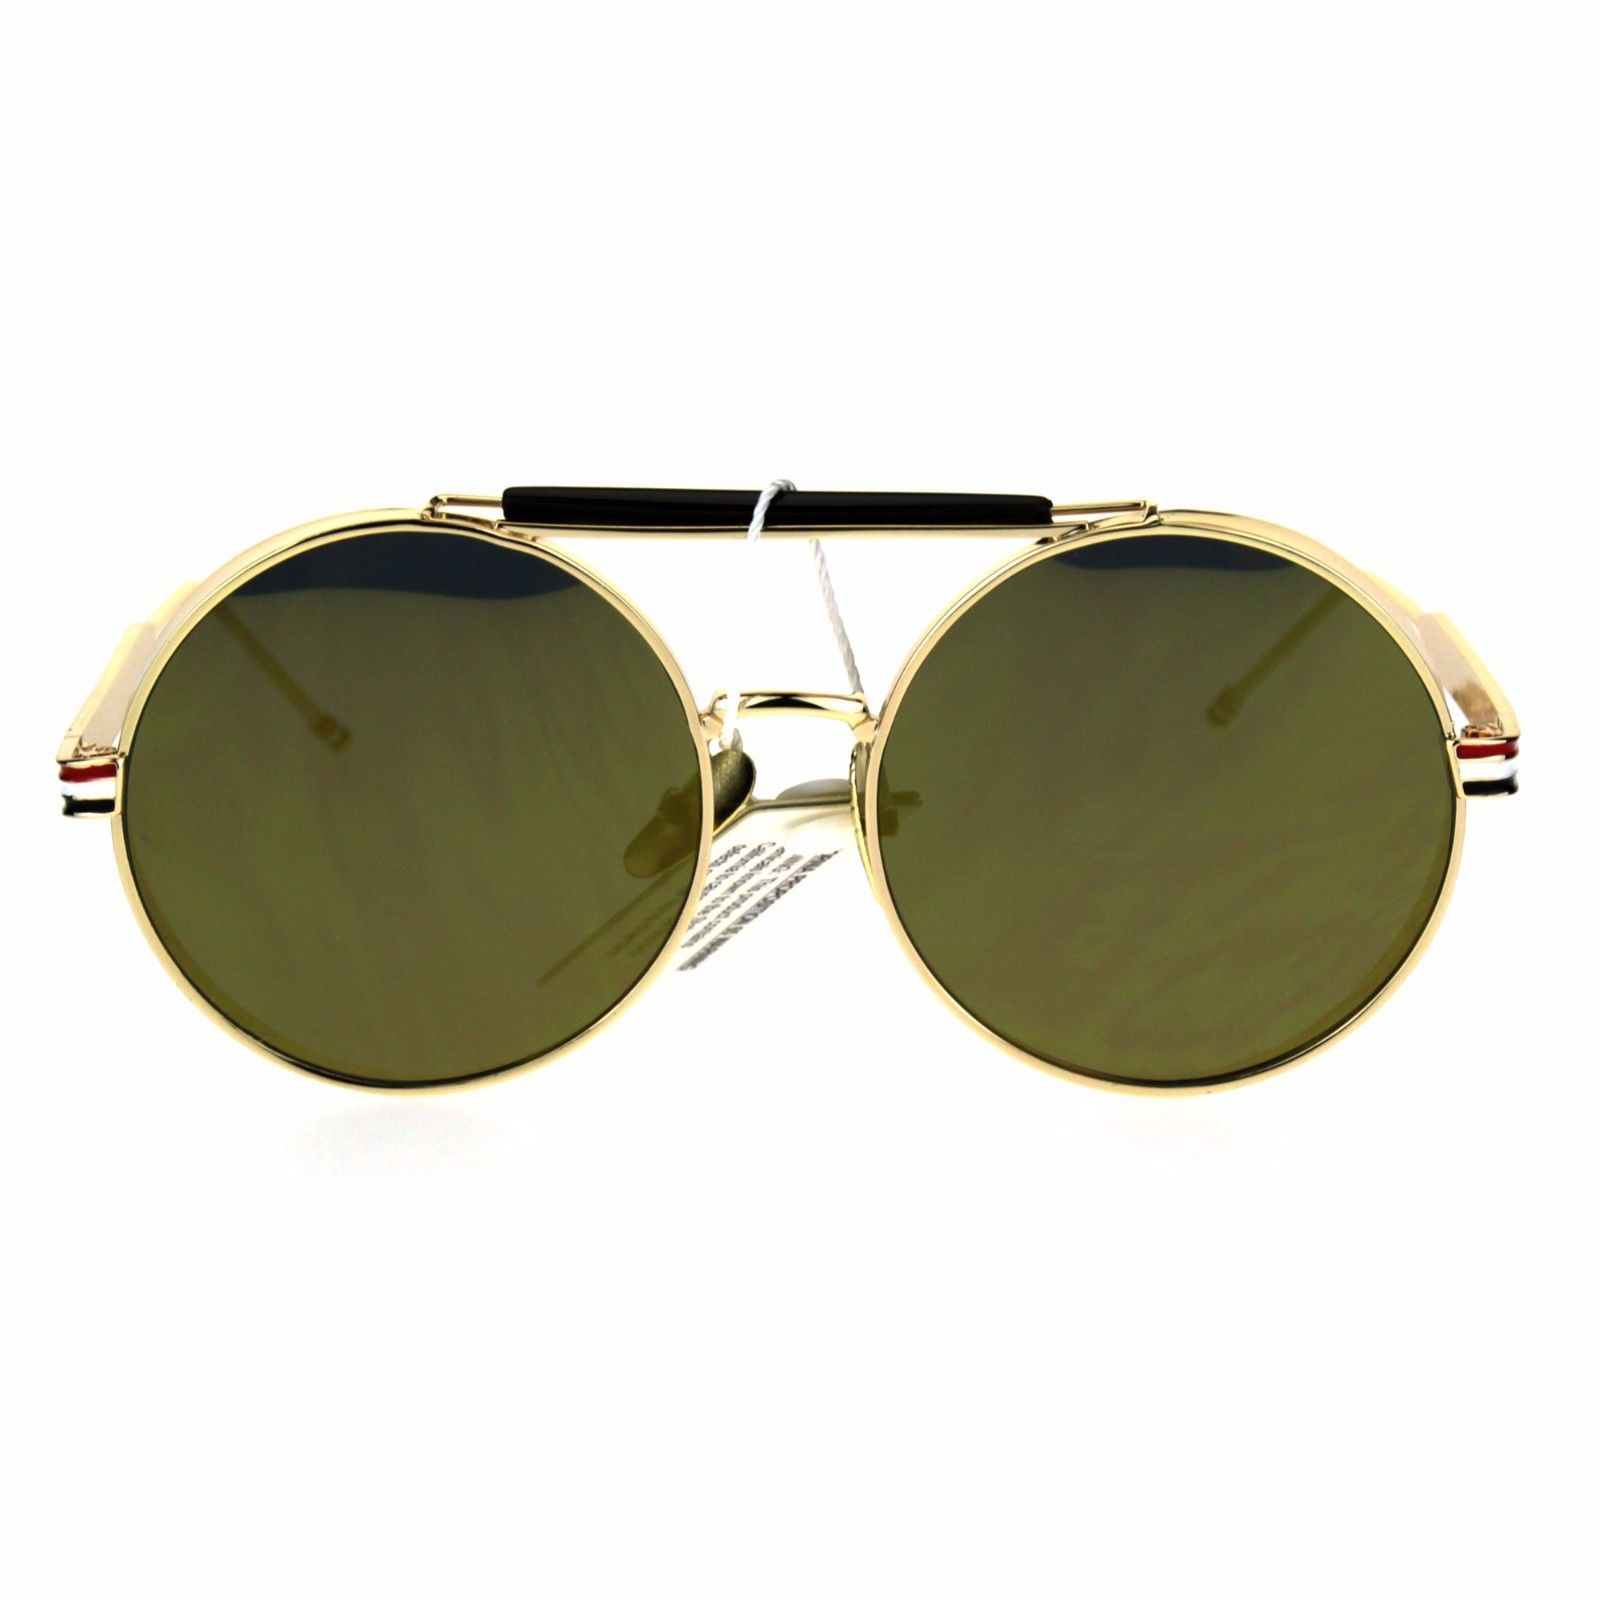 Vintage Retro Fashion Sunglasses Side Cover Round Circle Unisex Shades